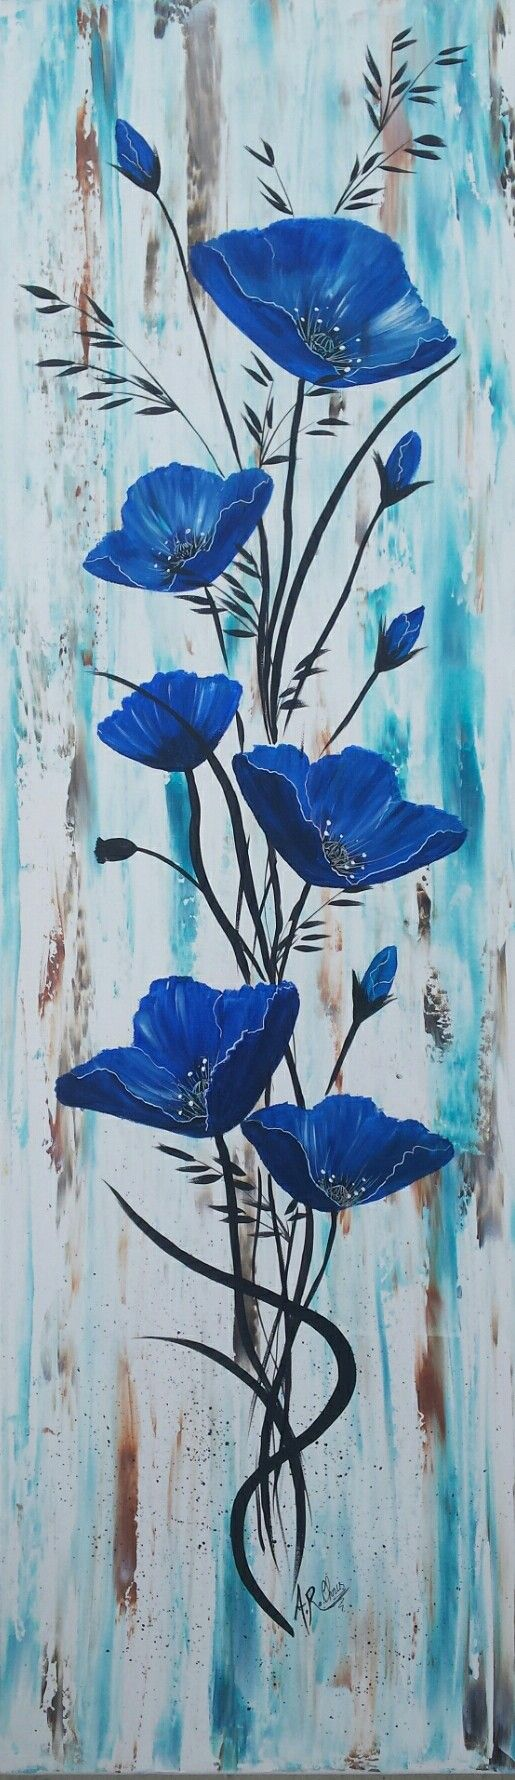 """In blue 3""  Peinture acrylique sur toile 30x80  By Raffin Christine  Facebook : L'étoile de Chris"